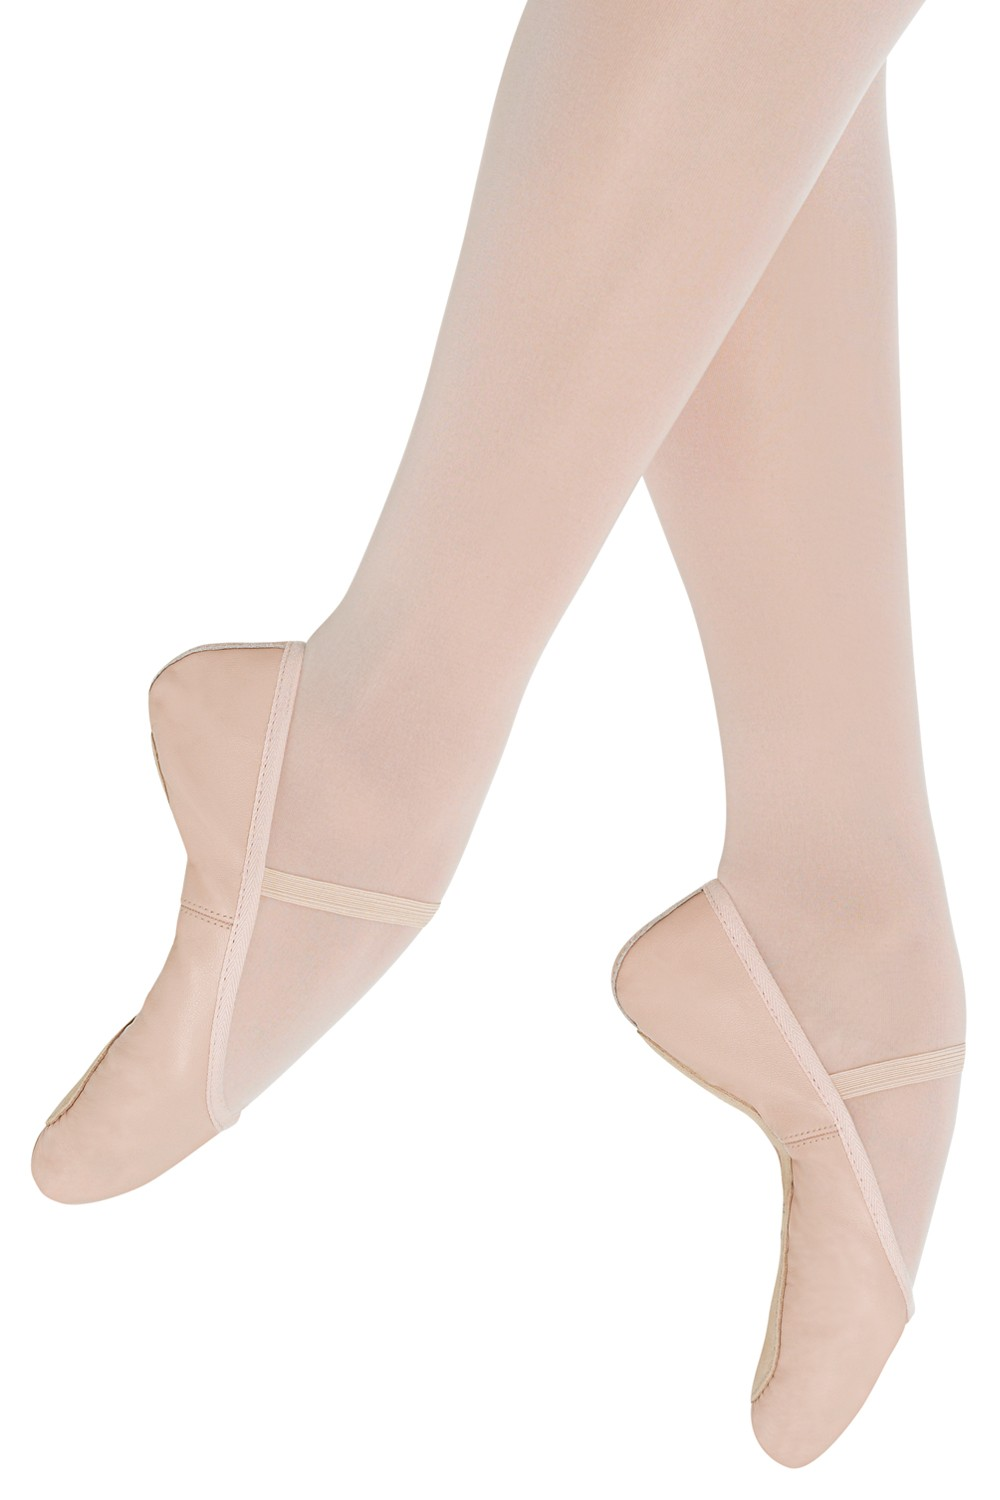 Debut I - Mädchen  Girl's Ballet Shoes